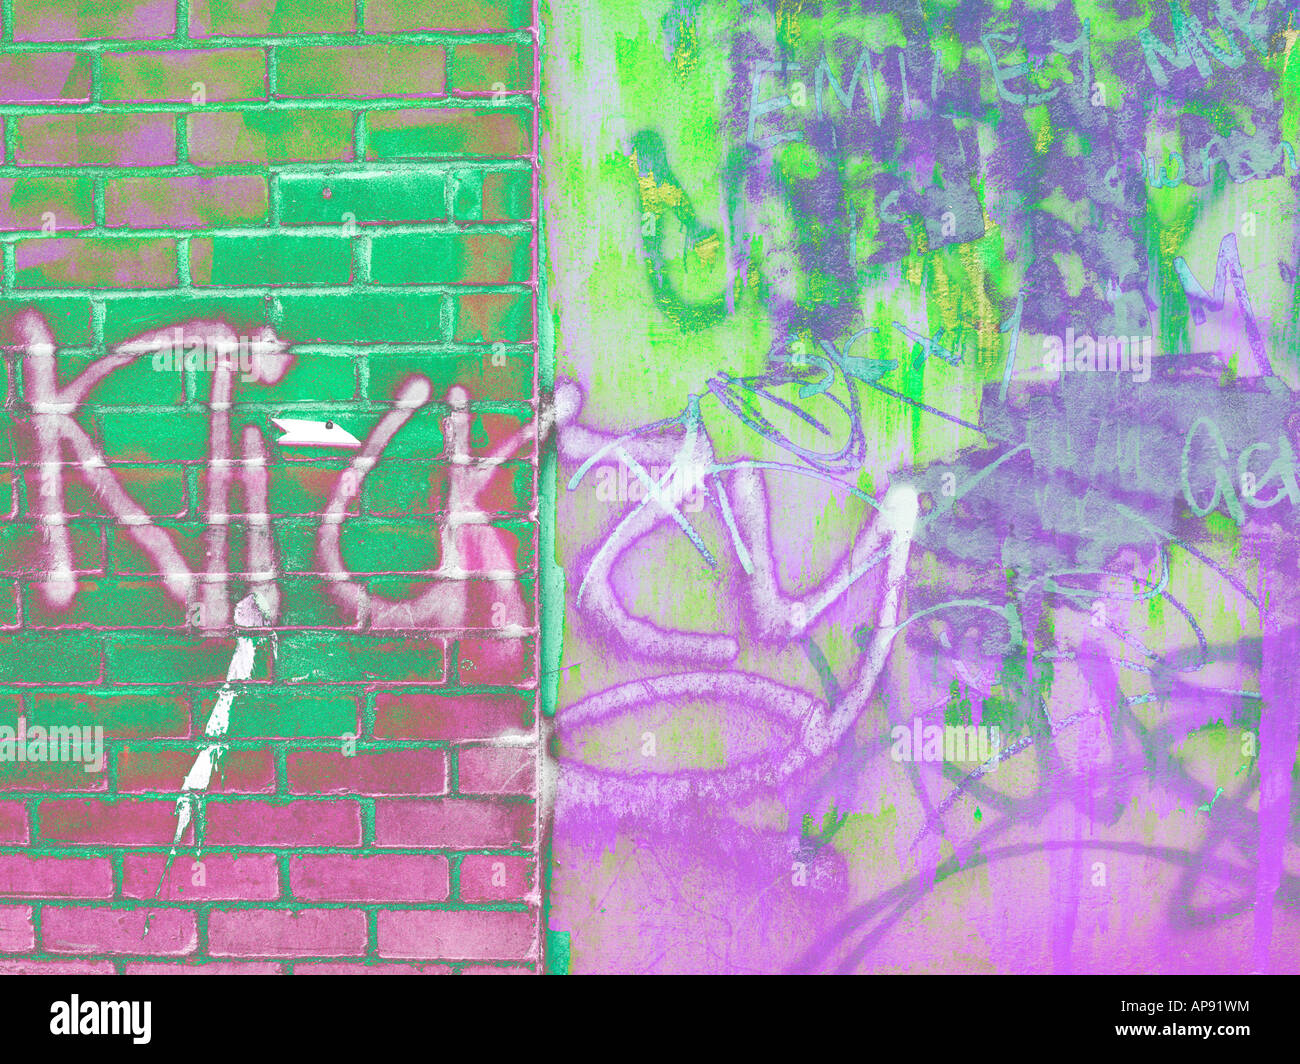 Graffiti on Wall - Stock Image